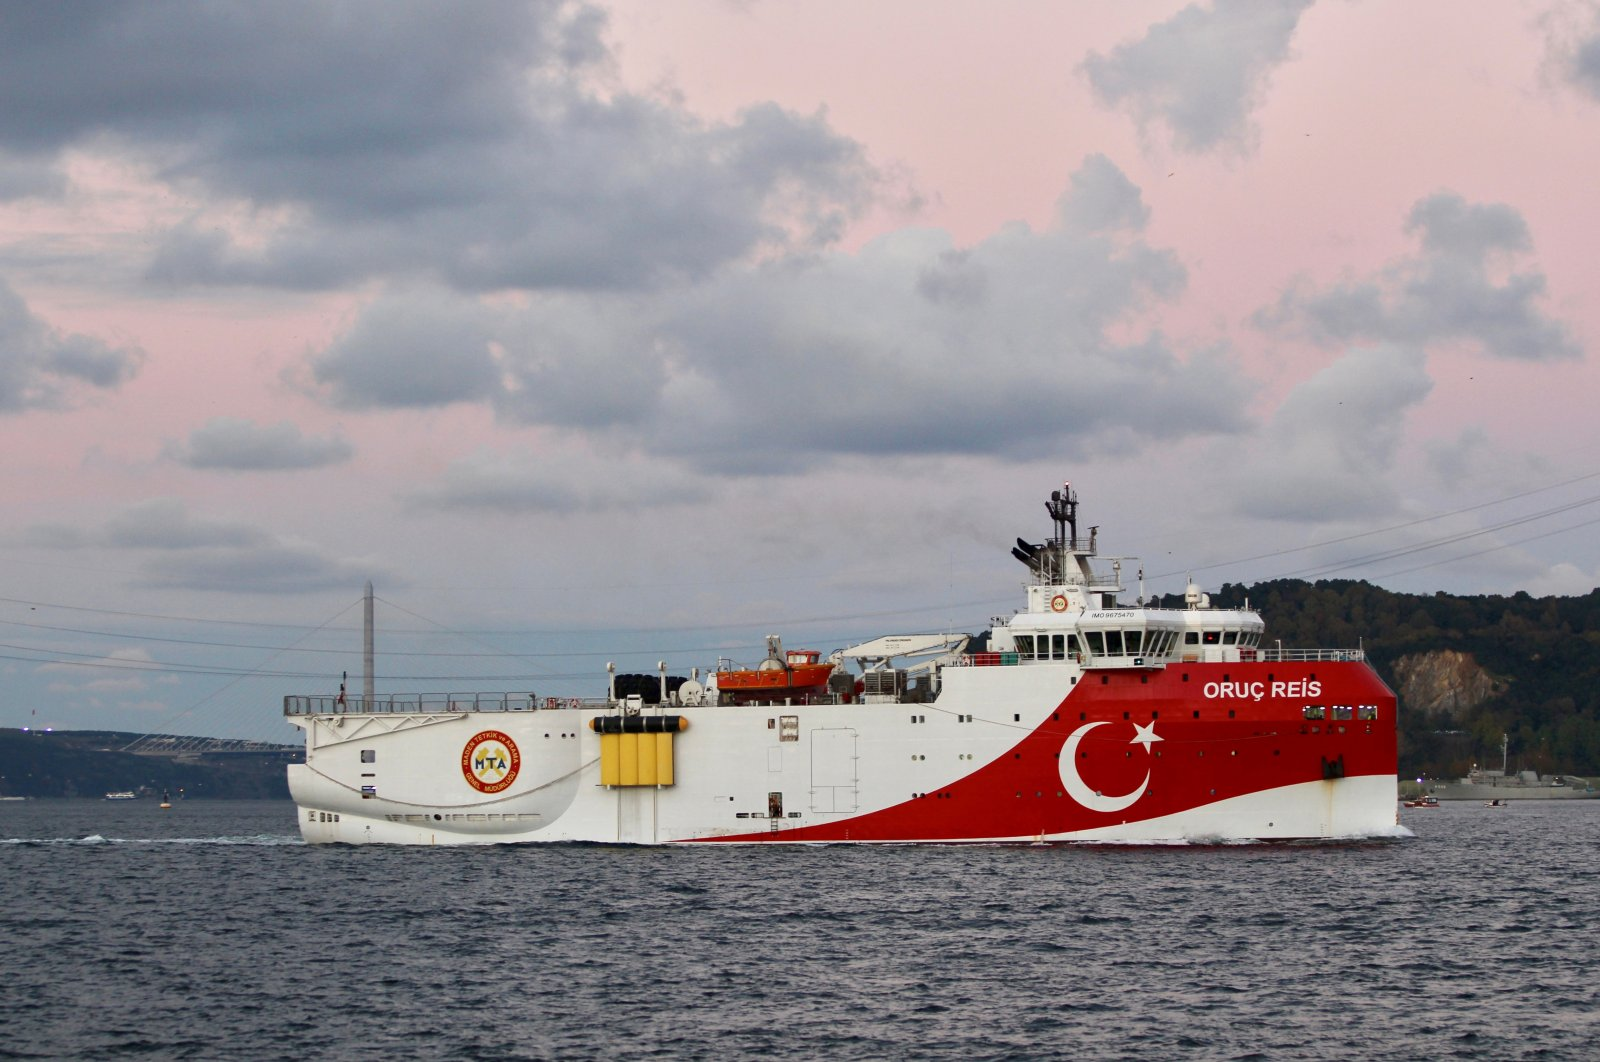 Turkish seismic research vessel Oruç Reis sails in the Bosporus in Istanbul, Nov. 12, 2018. (REUTERS)